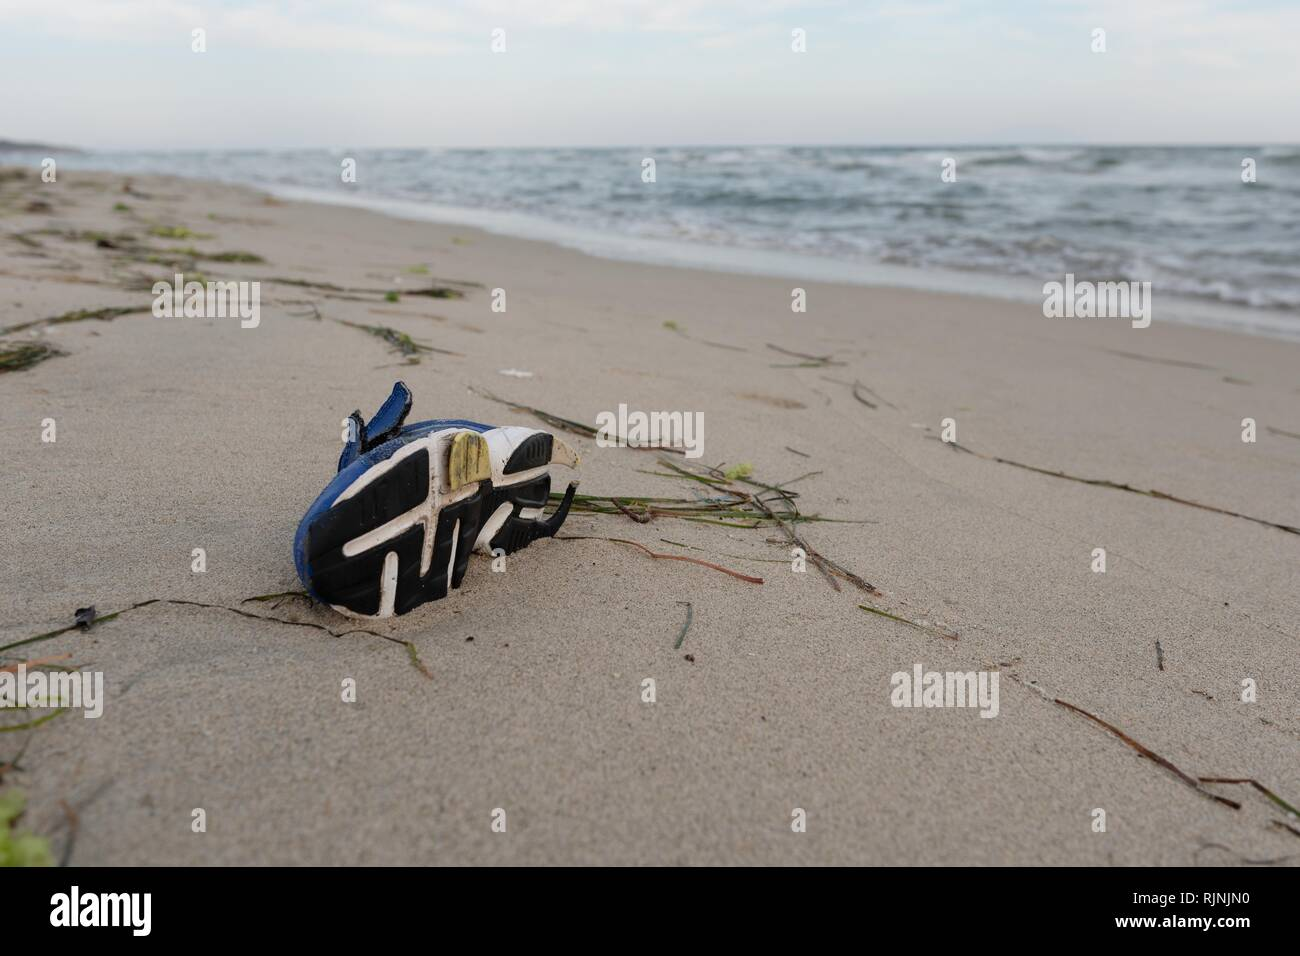 Shoe on the beach - Stock Image